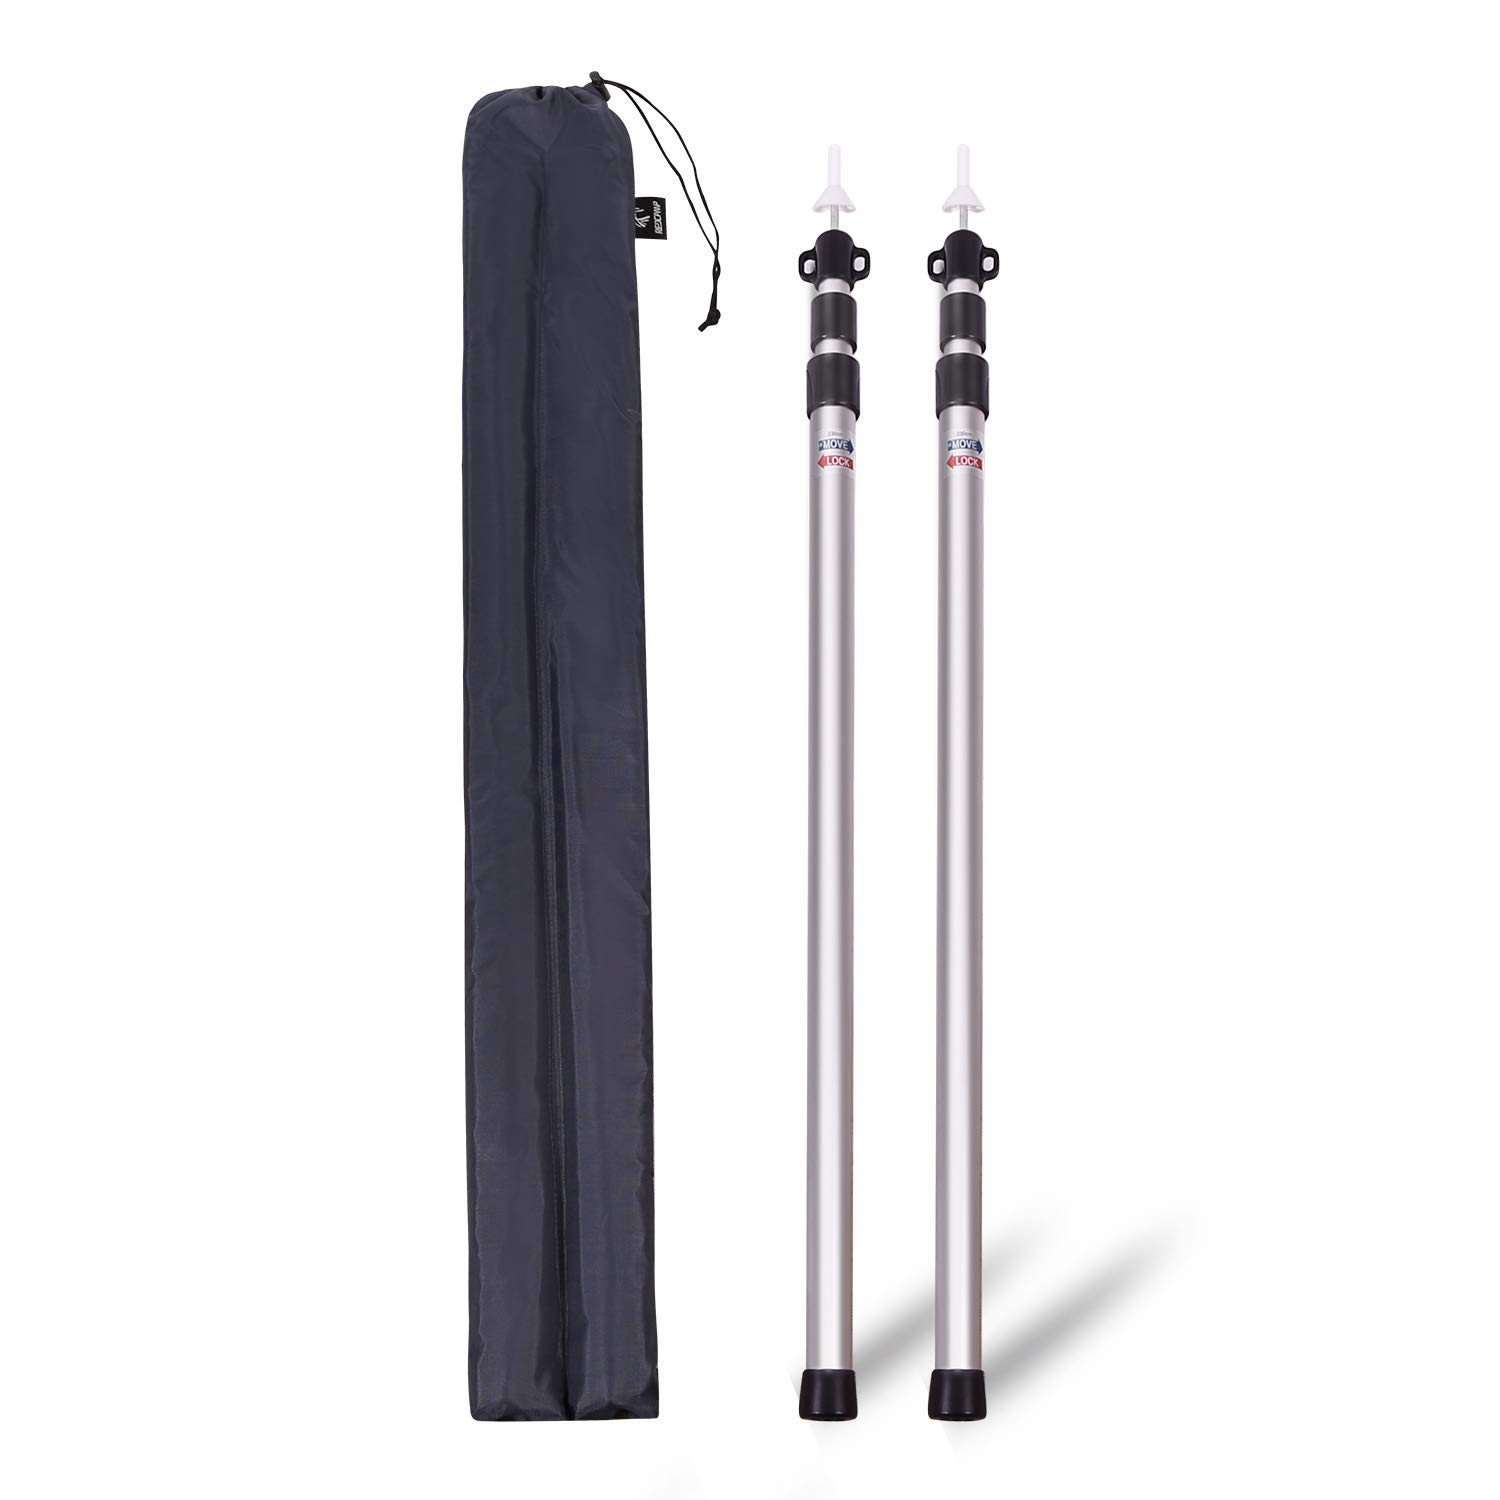 REDCAMP Aluminum Adjustable Camping Tarp Poles, Set of 2, 90'' Telescoping Lightweight Tent Poles for Shelter, Hammock Rain Fly, Awning by REDCAMP